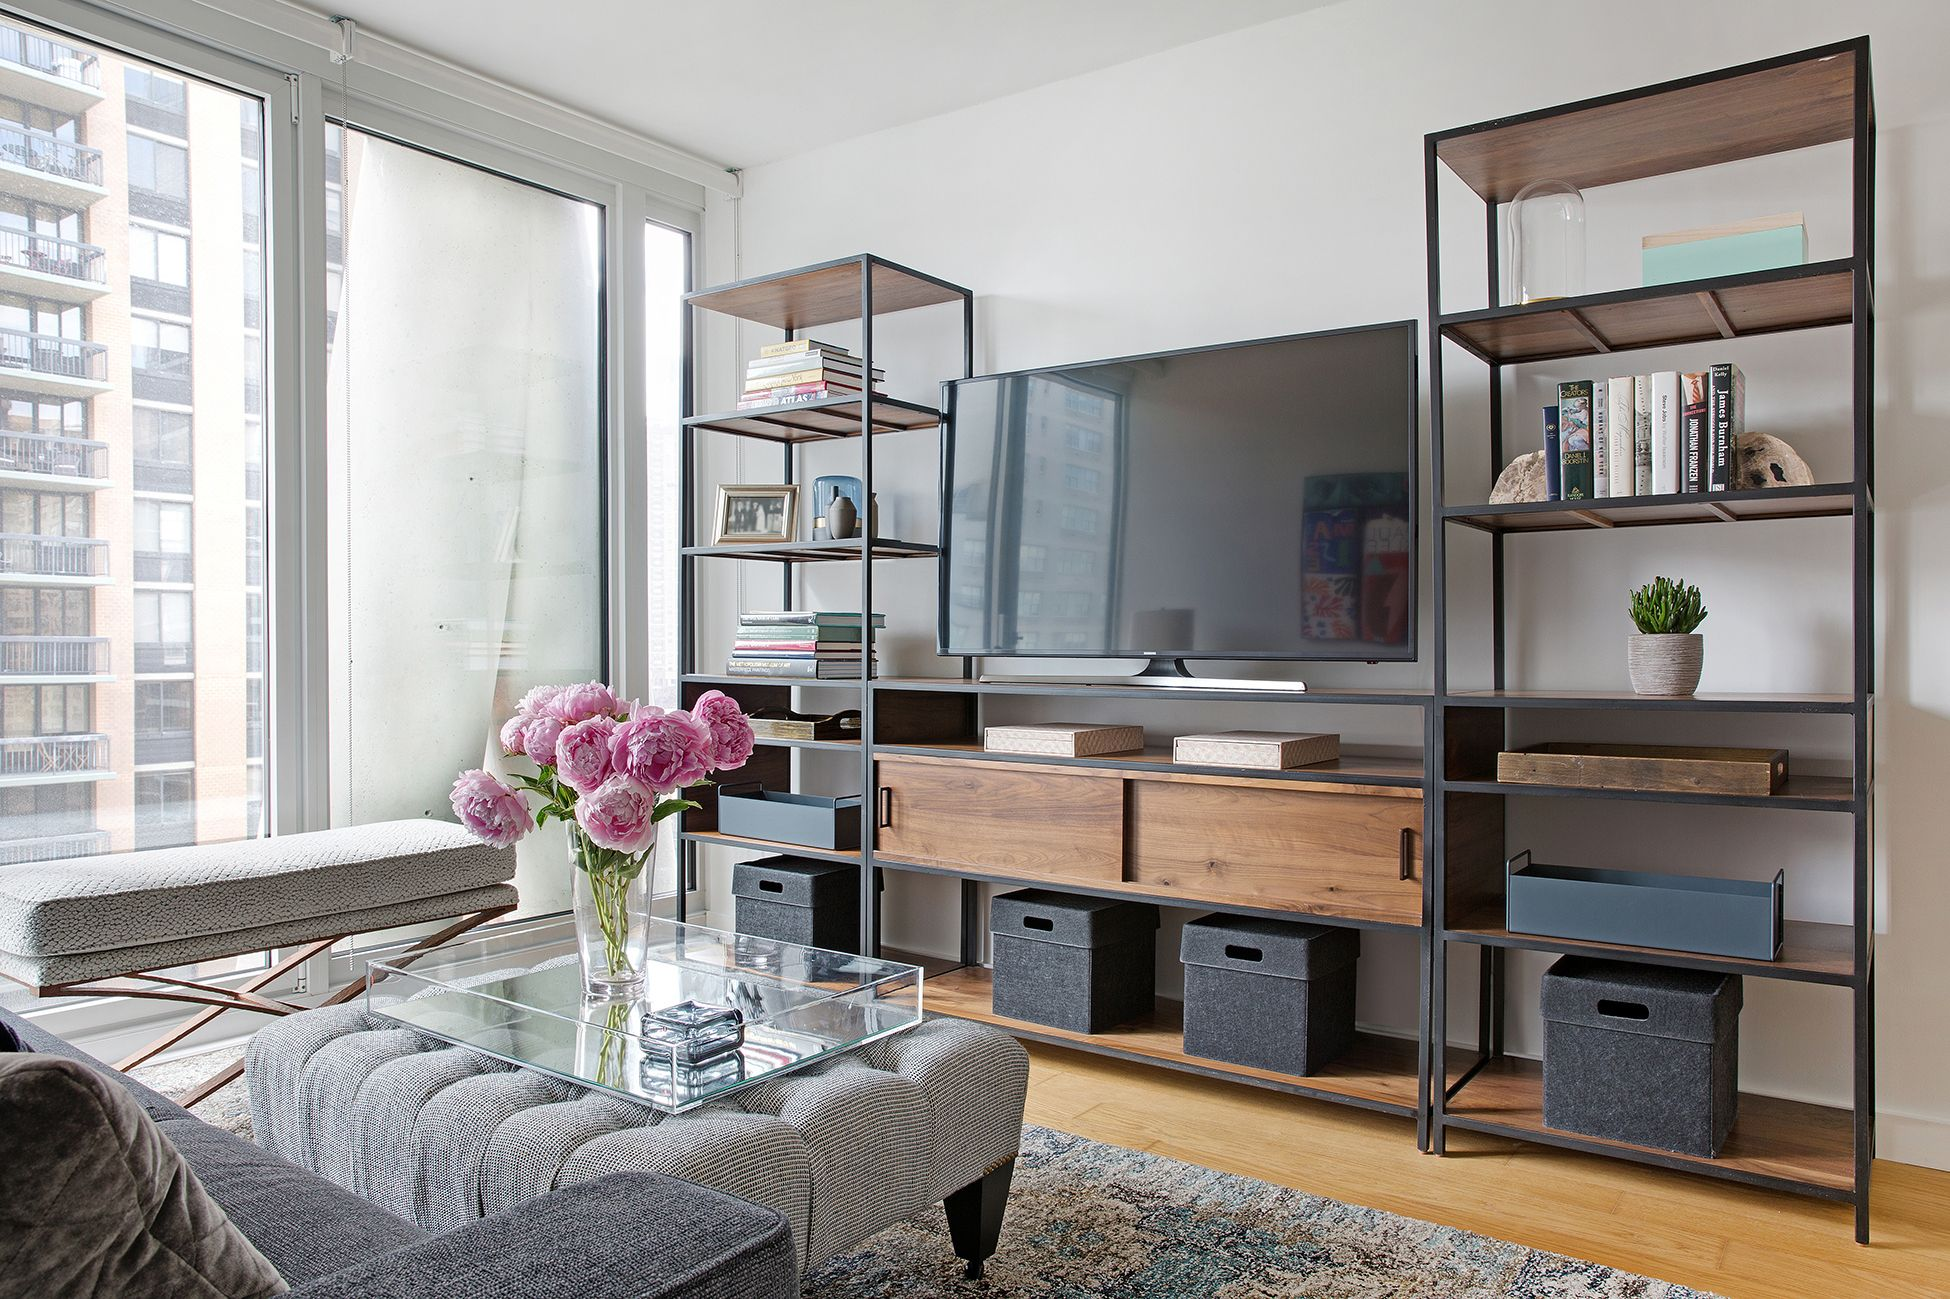 A New York City Apartment Gets An Interior Design Upgrade Decor Aid Woonkamer